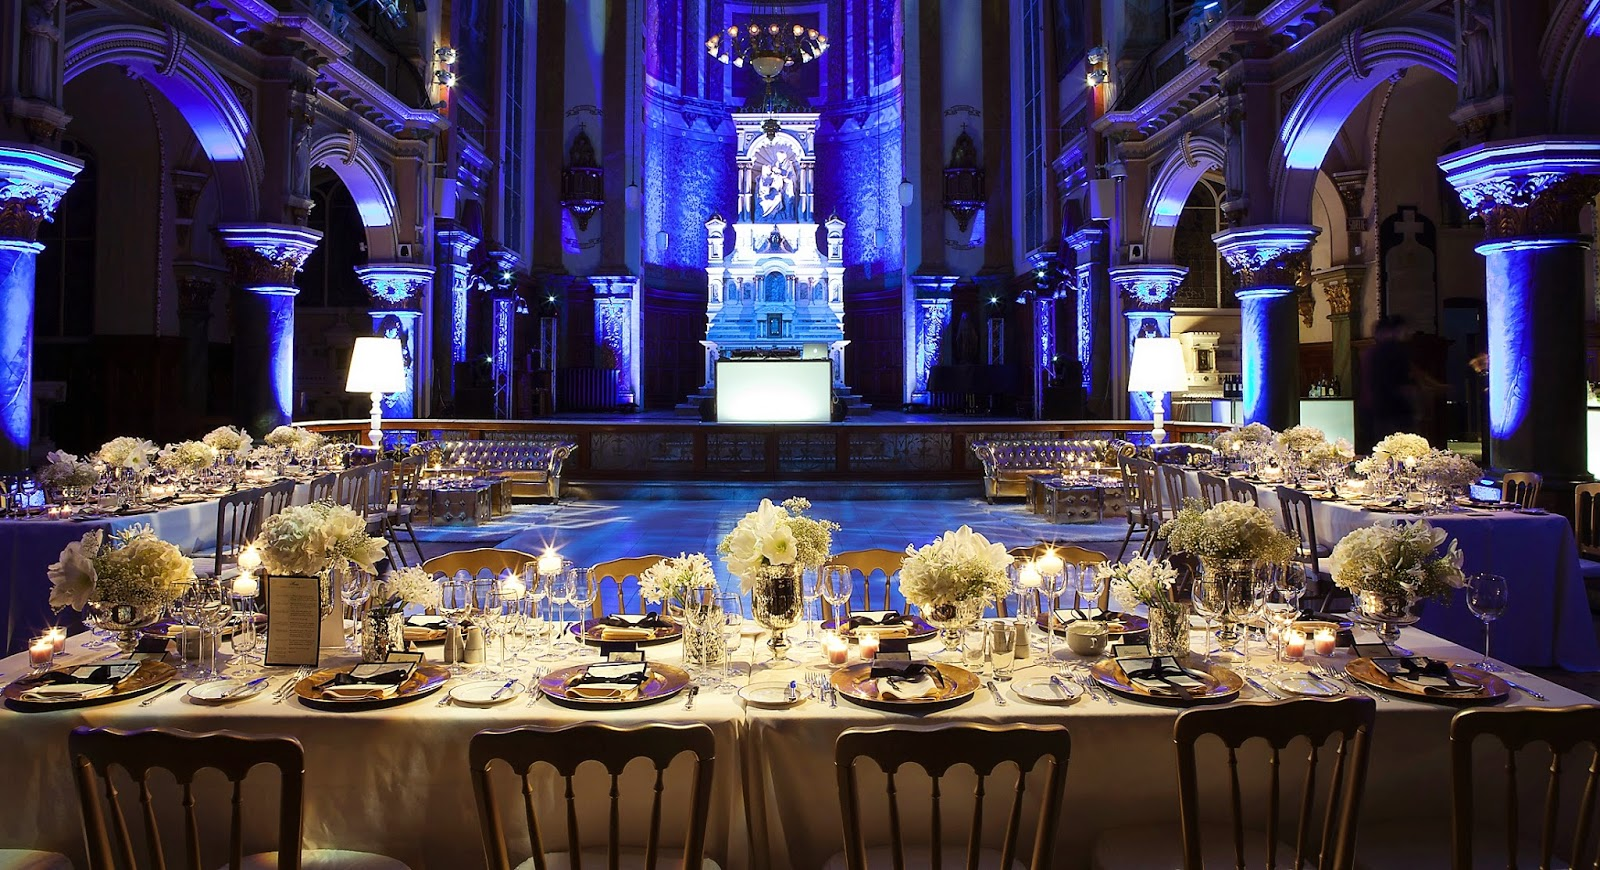 wedding luxury event montreal planning weddings events kingdom mykonos themes planner luxurious mariage venues theme locations chapel quebec chapelle crystal